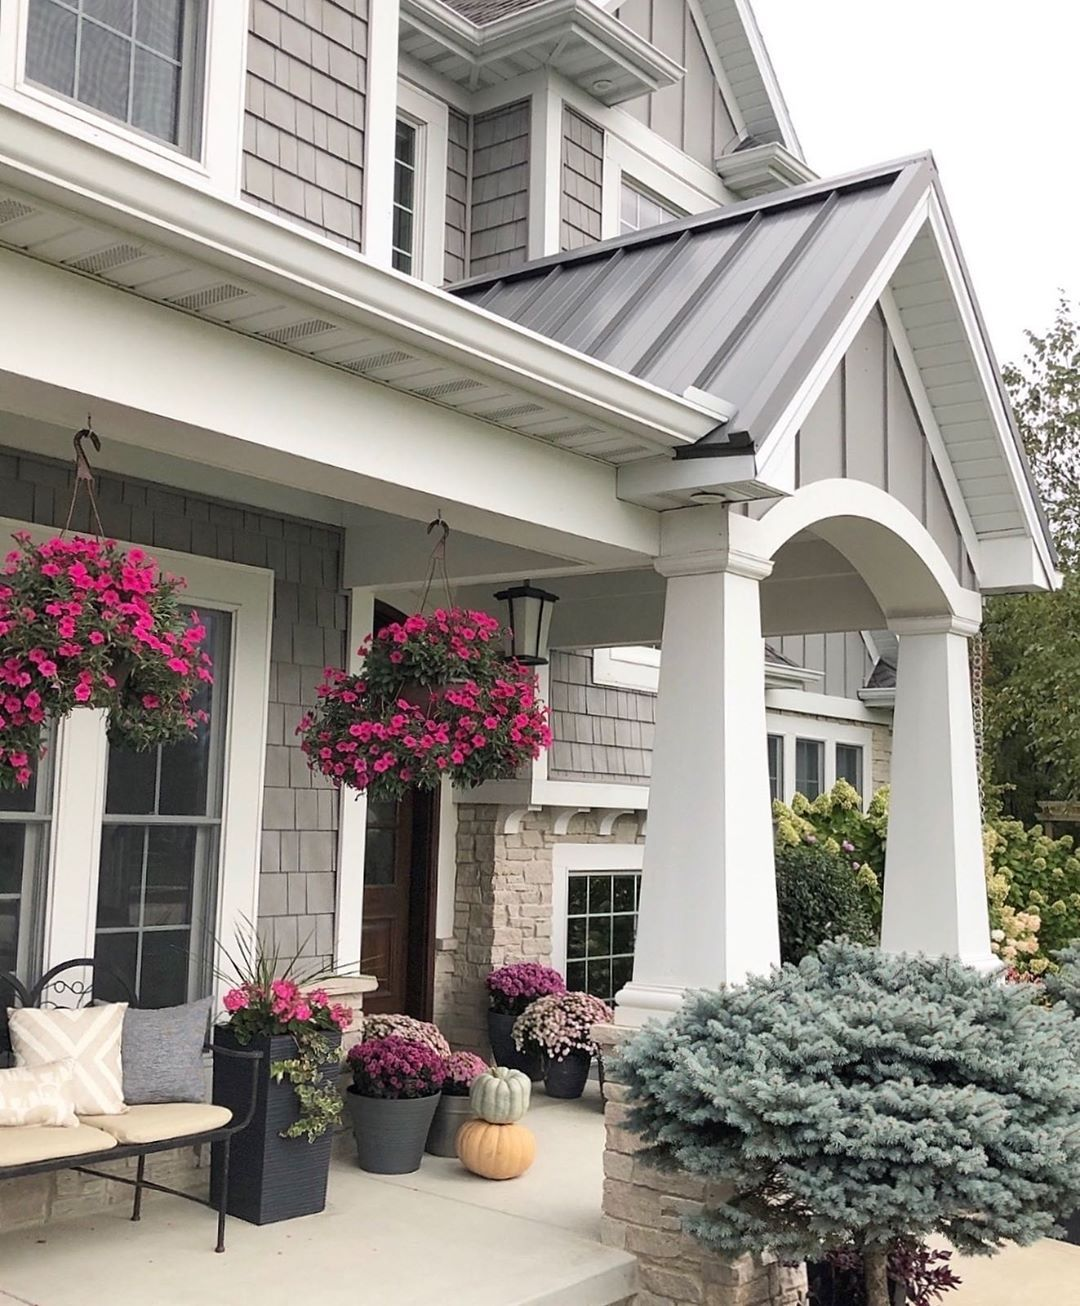 Grey Craftsman Style Home Large Front Porch Grey Shaker Style Home Exterior Caroline On Design Home Exterior Siding Options House Exterior Siding Options